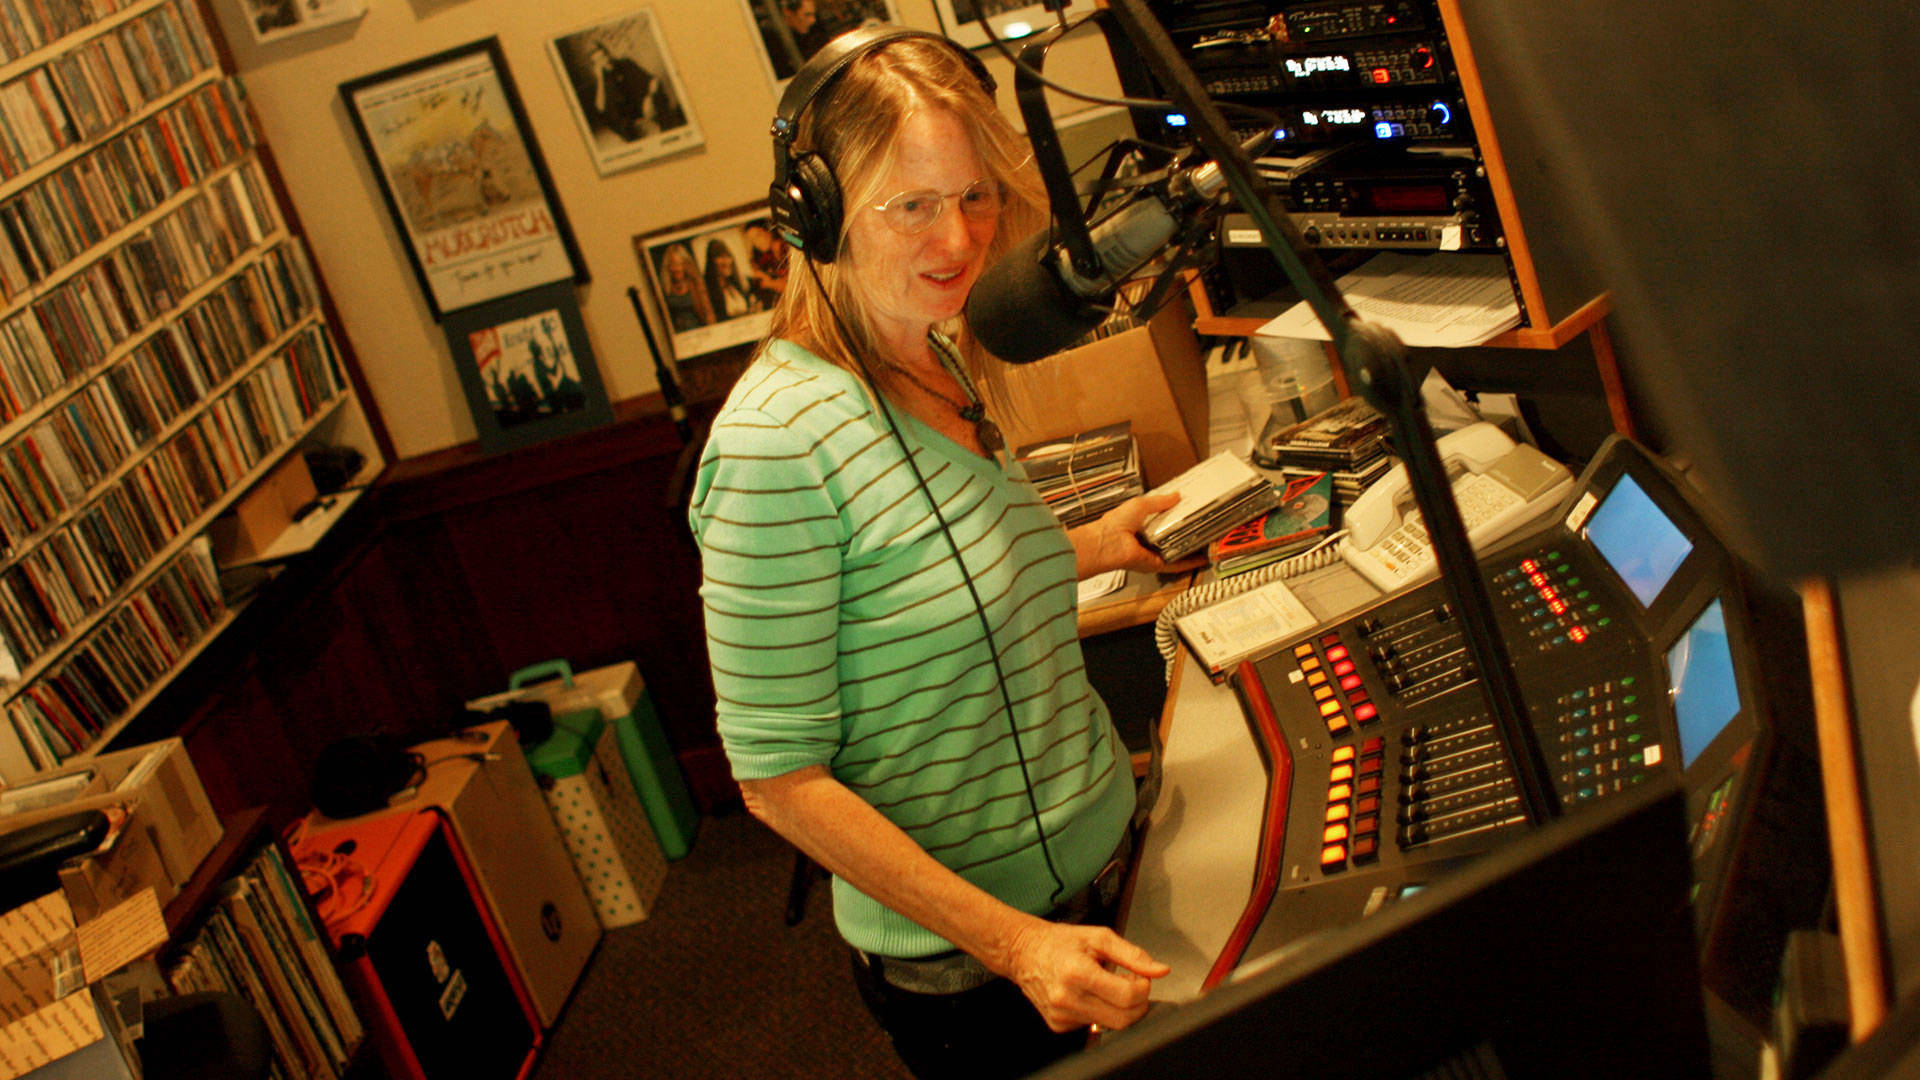 Robin Pressman on the air at KRSH-FM in Santa Rosa. Pressman lost her house in the Oct. 8 fires, and finds weekly healing in music for listeners. Gabe Meline/KQED